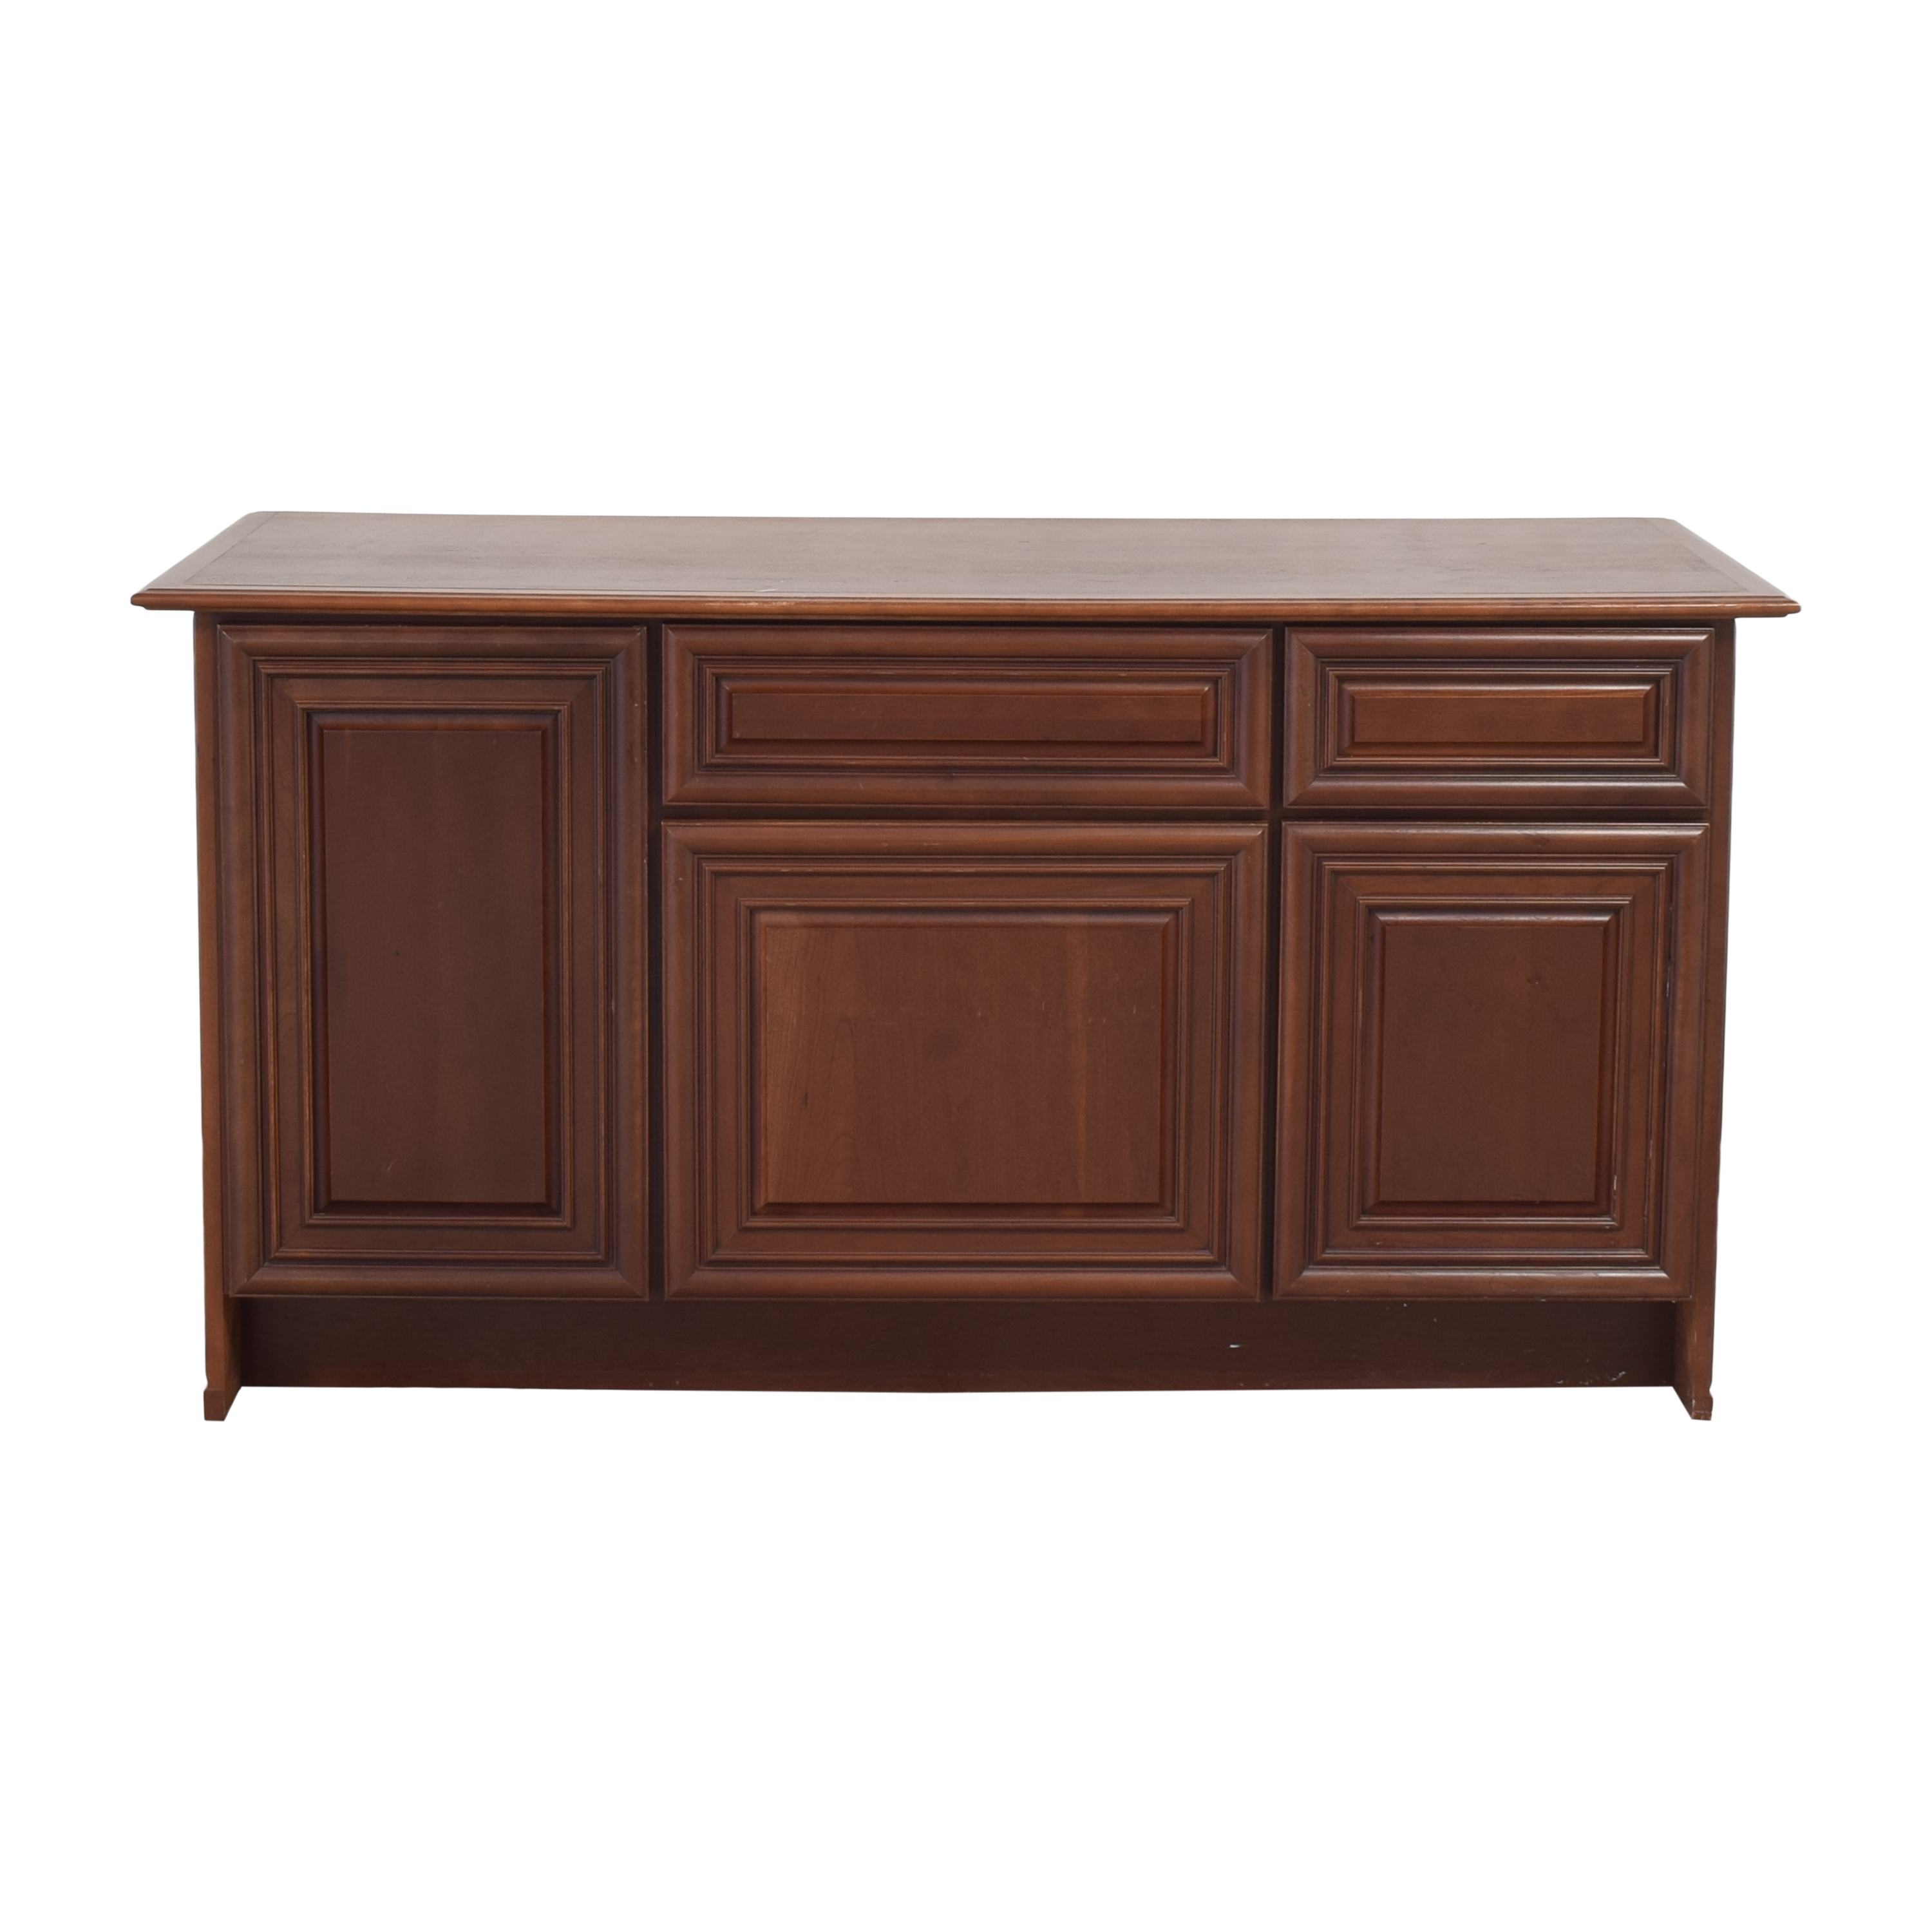 Yorktowne Cabinetry Yorktowne Cabinetry Office Credenza second hand